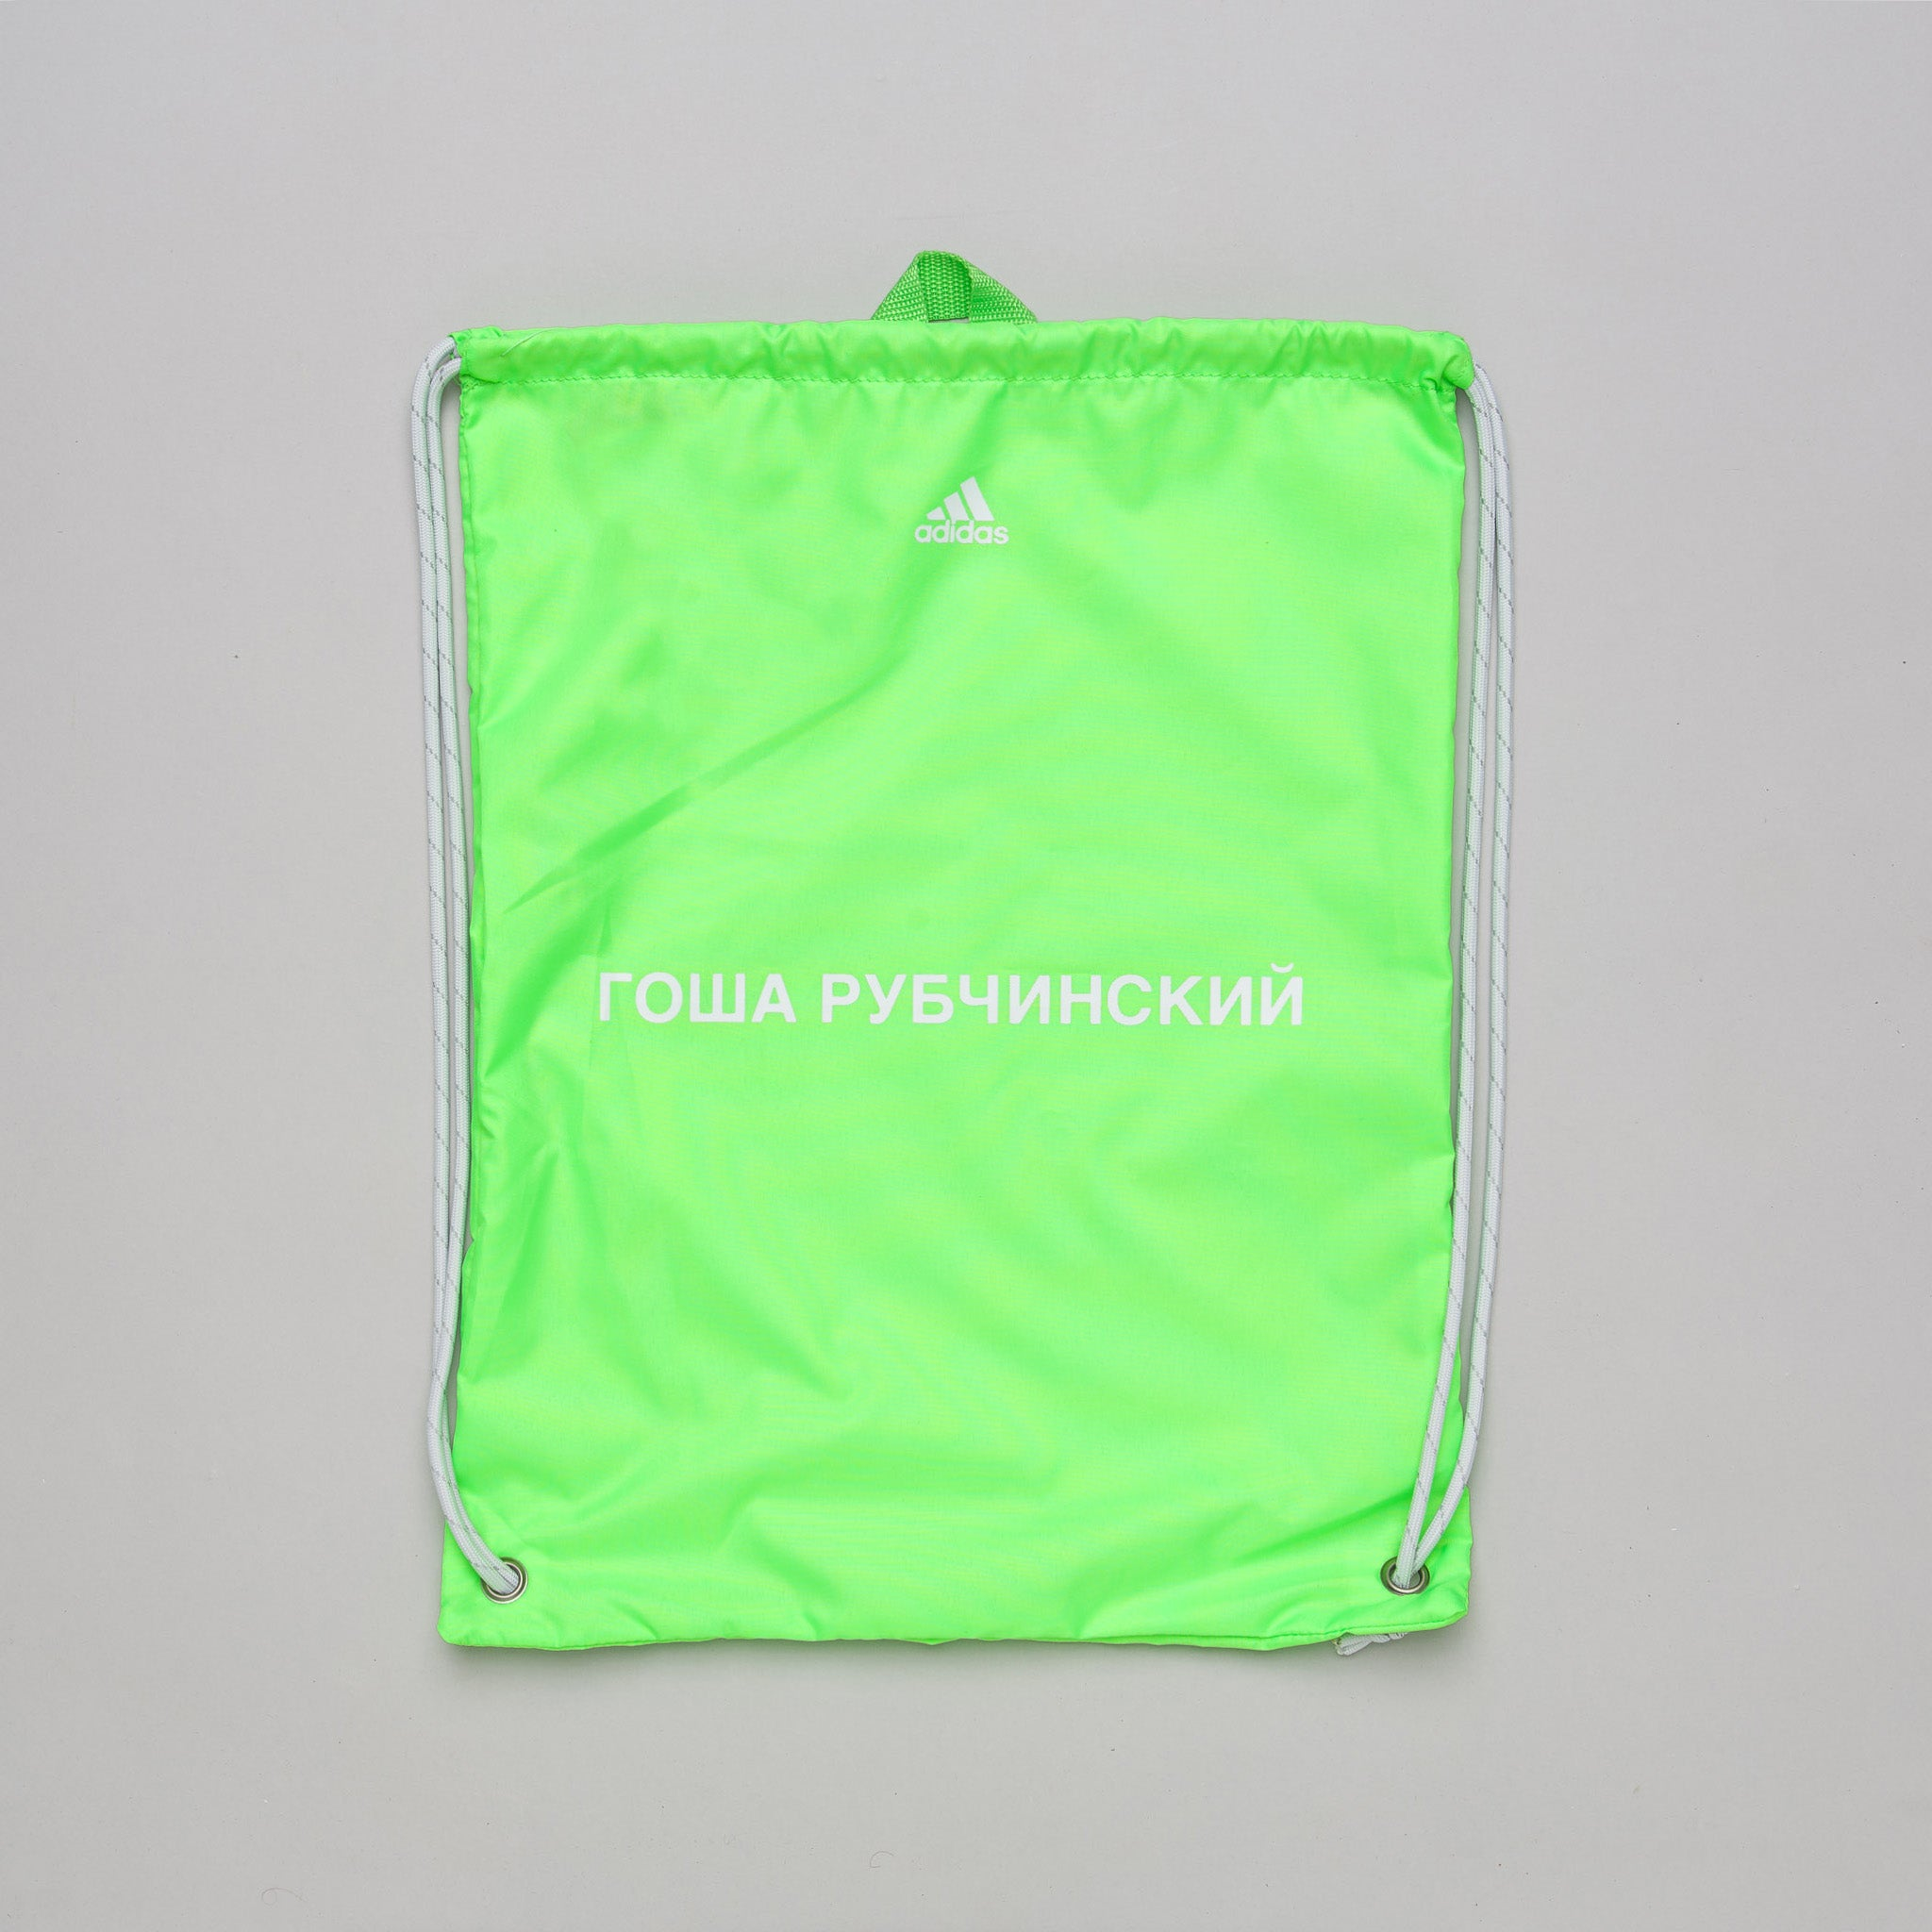 x Adidas Gym Bag in Neon Green